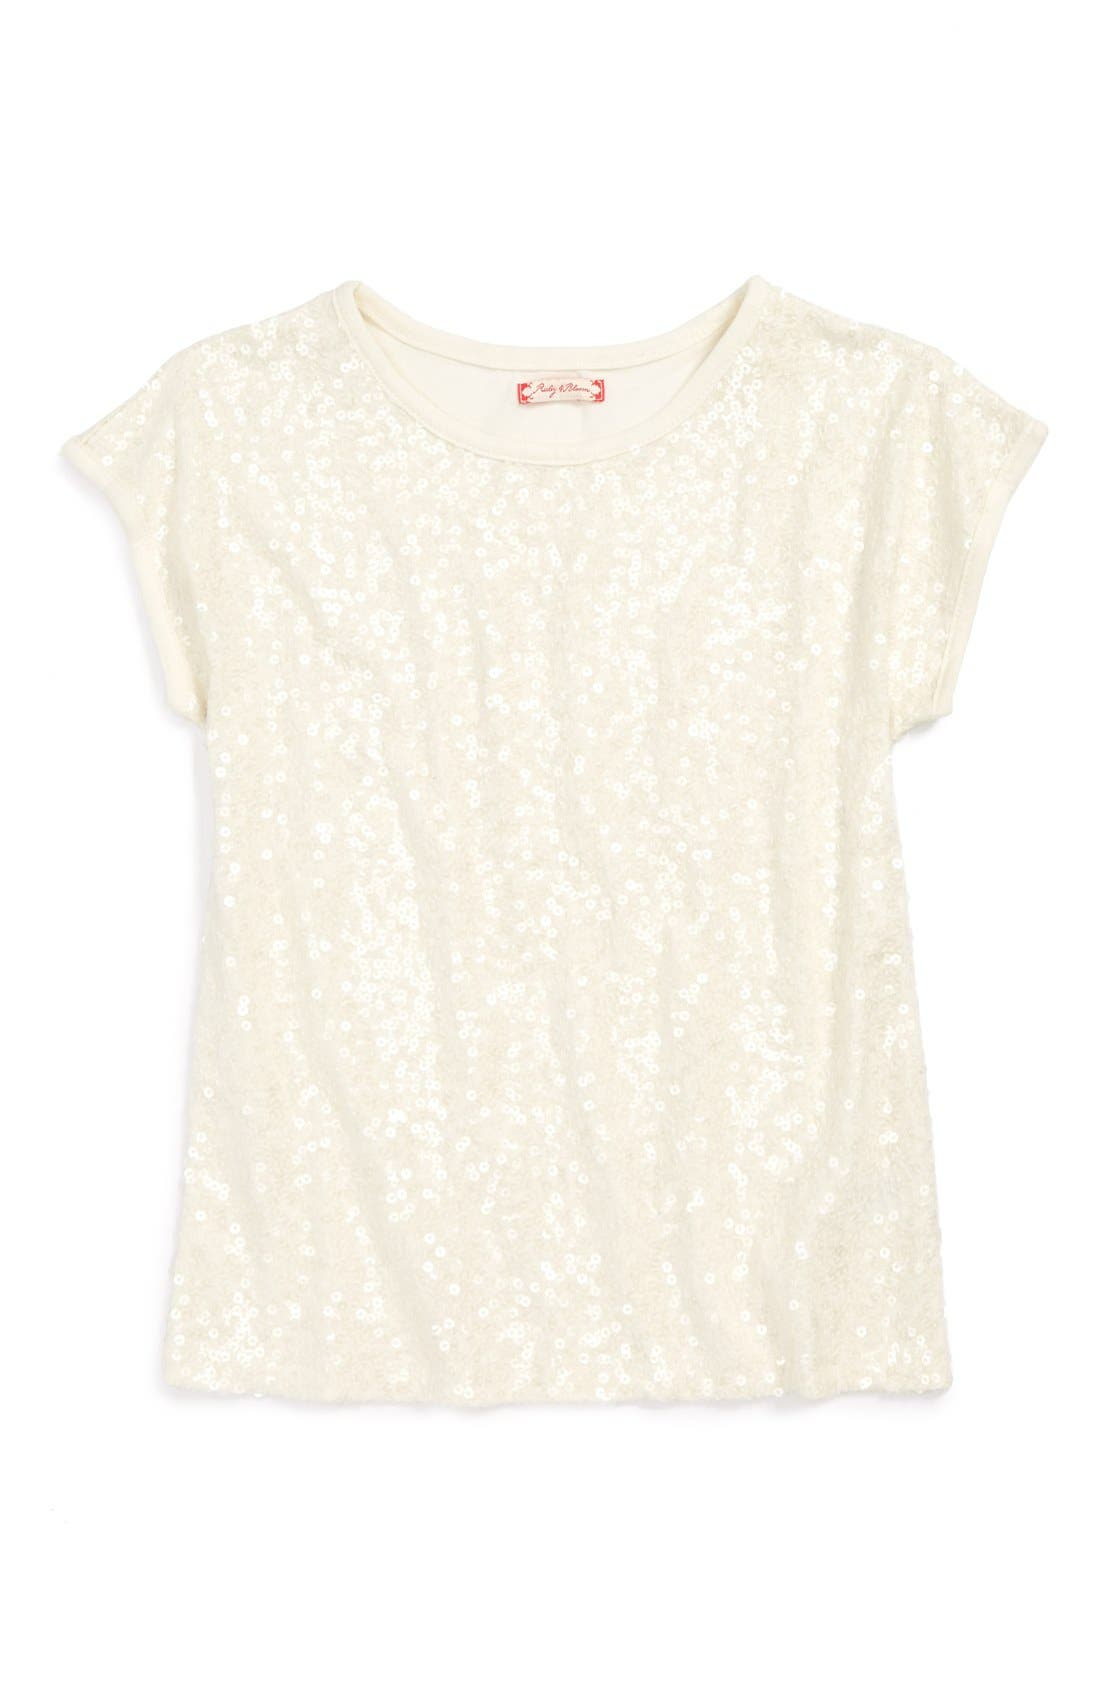 Main Image - Ruby & Bloom 'Naiko' Sparkle Tee (Little Girls & Big Girls)